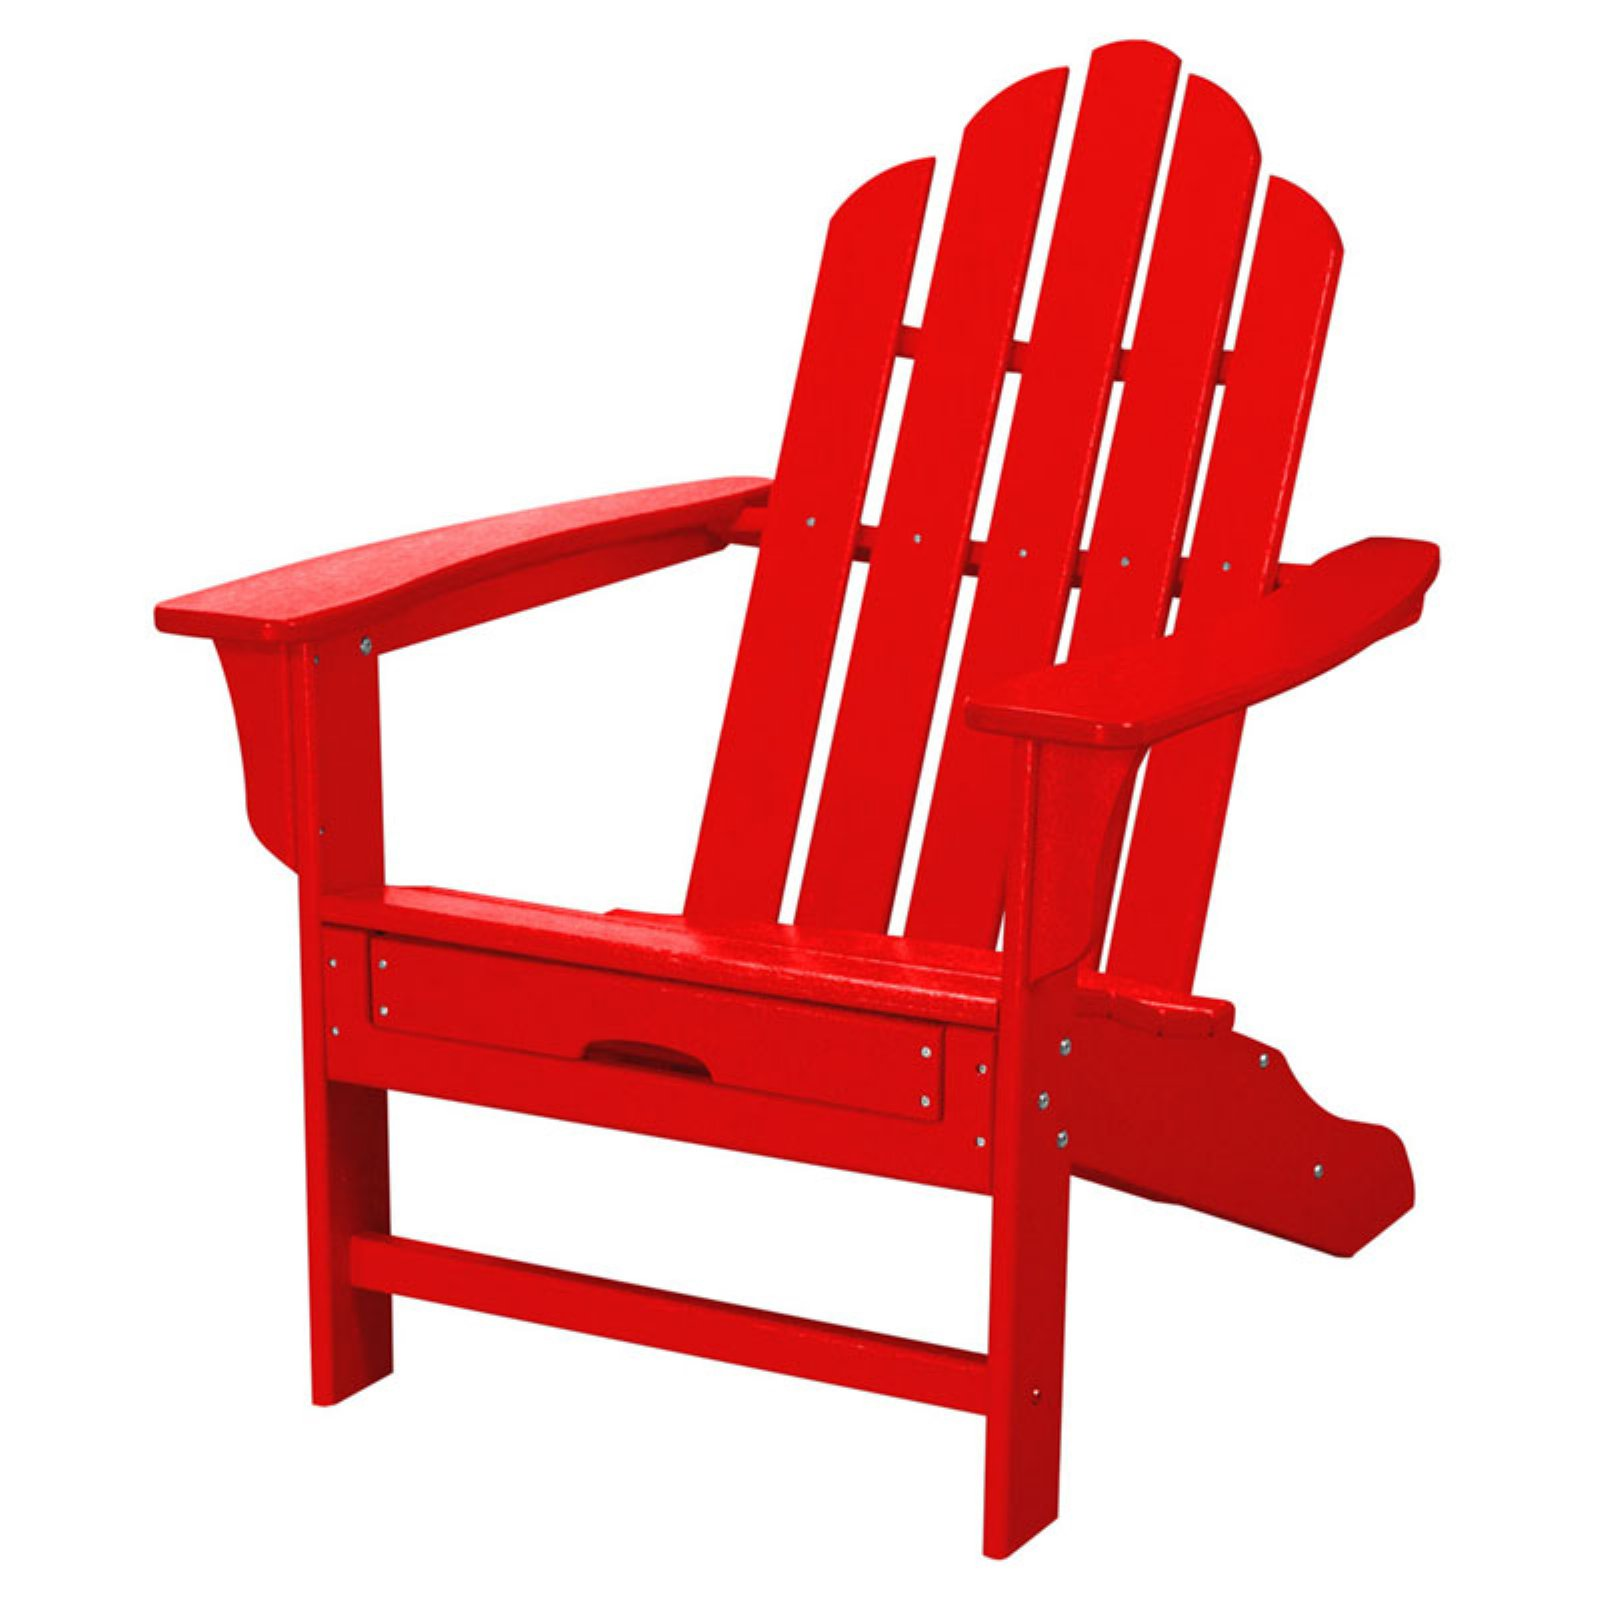 Hanover Outdoor Furniture All-Weather Contoured Adirondack Chair with Hideaway Ottoman by Hanover Outdoor Furniture